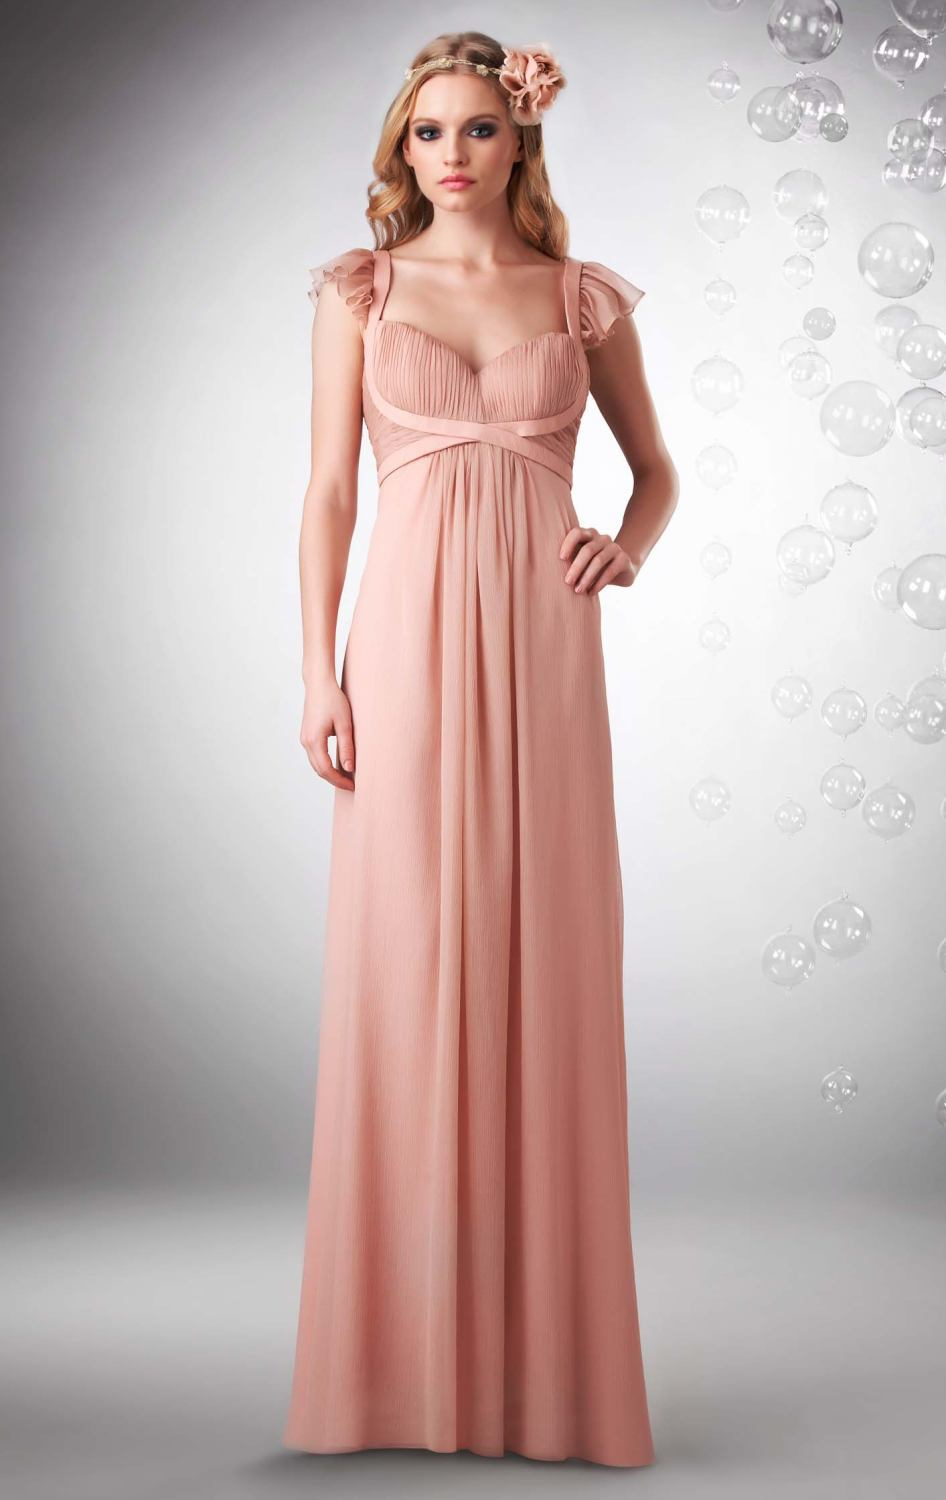 Pregnant bridesmaid dresses cocktail dresses 2016 pregnant bridesmaid dresses ombrellifo Gallery